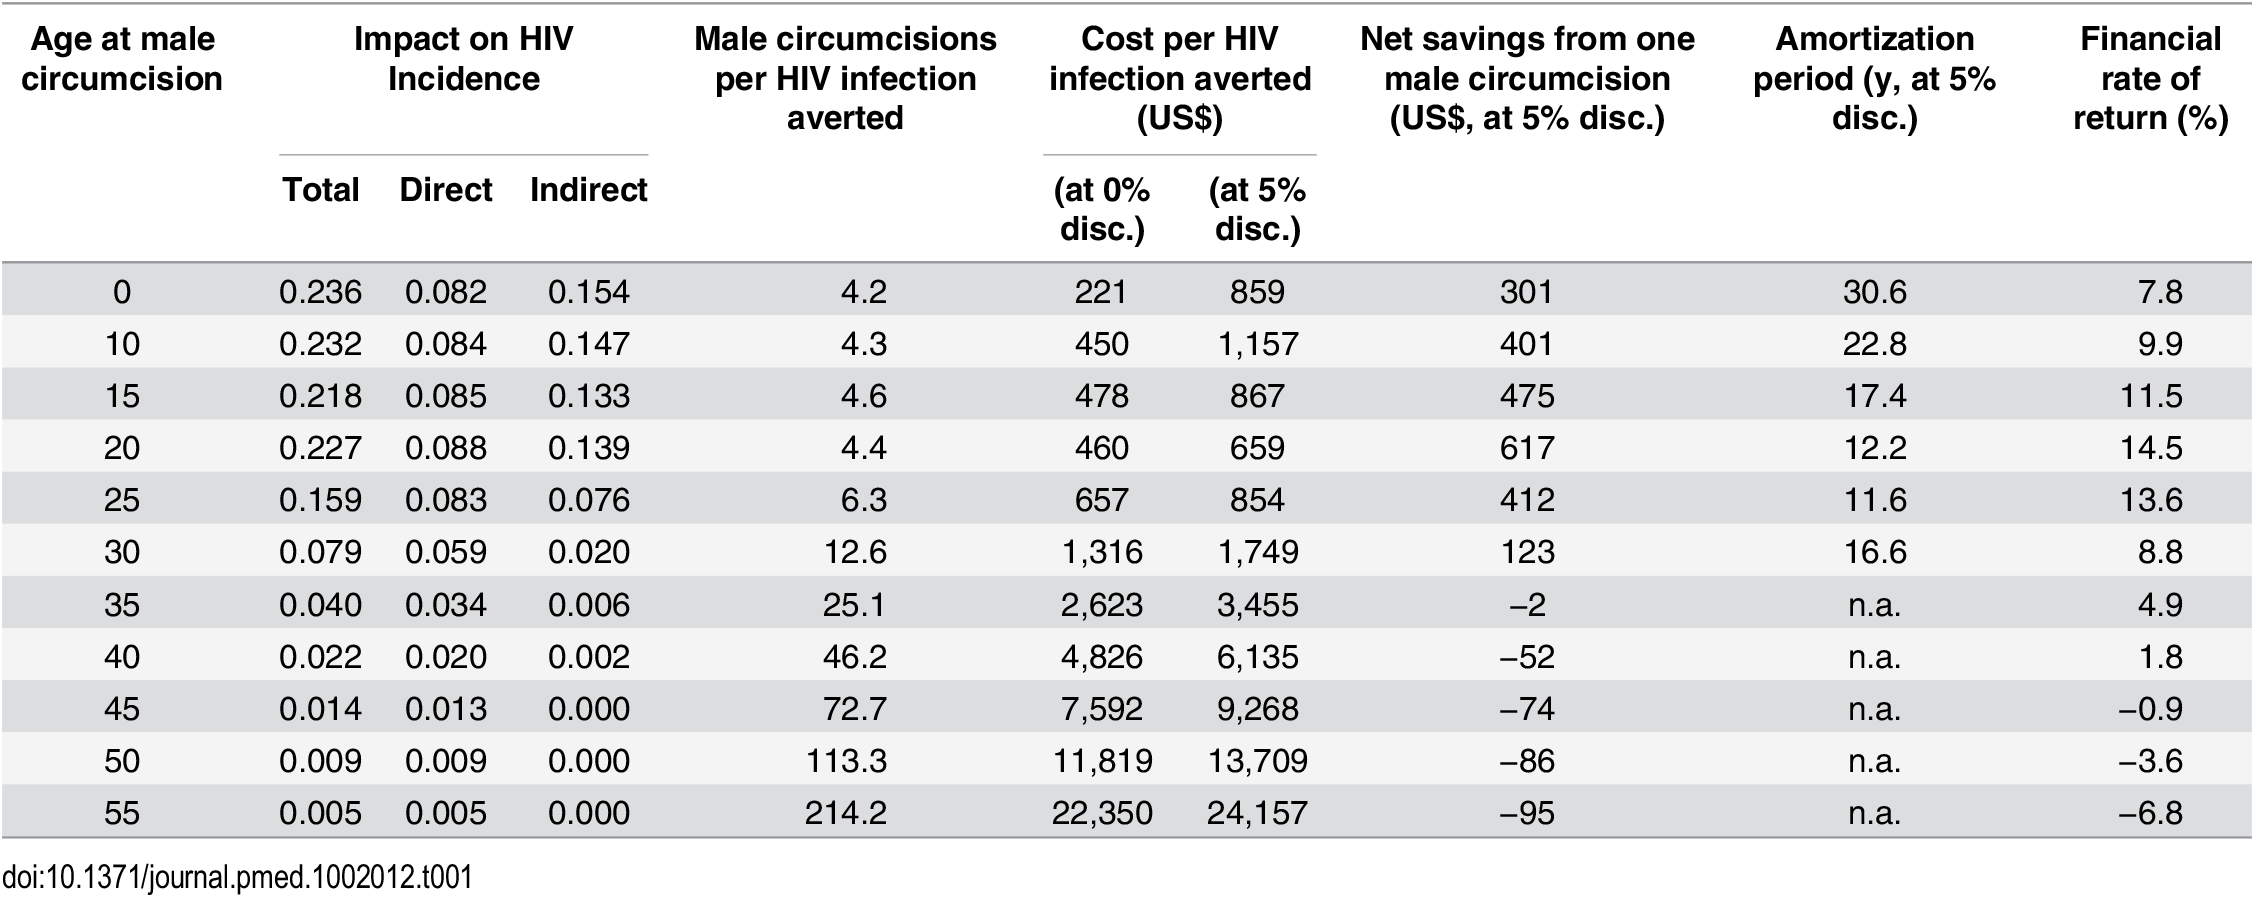 Summary of results (based on one male circumcision performed in South Africa in 2013).